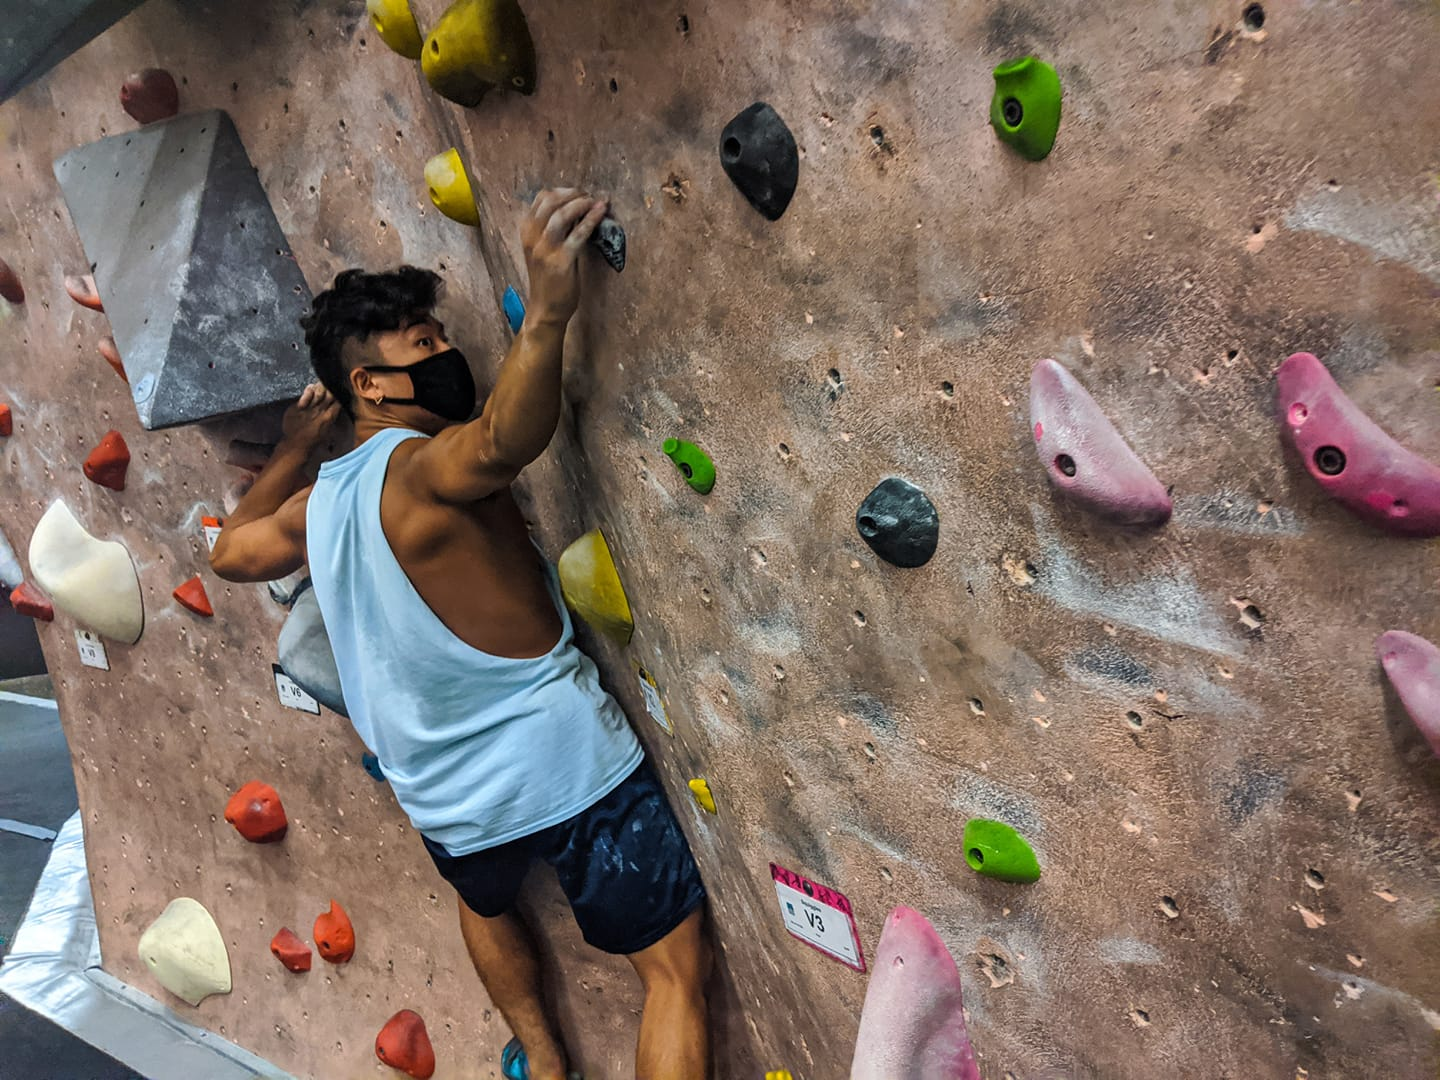 How To: Mental Training On and Off the Wall for Peak Performance